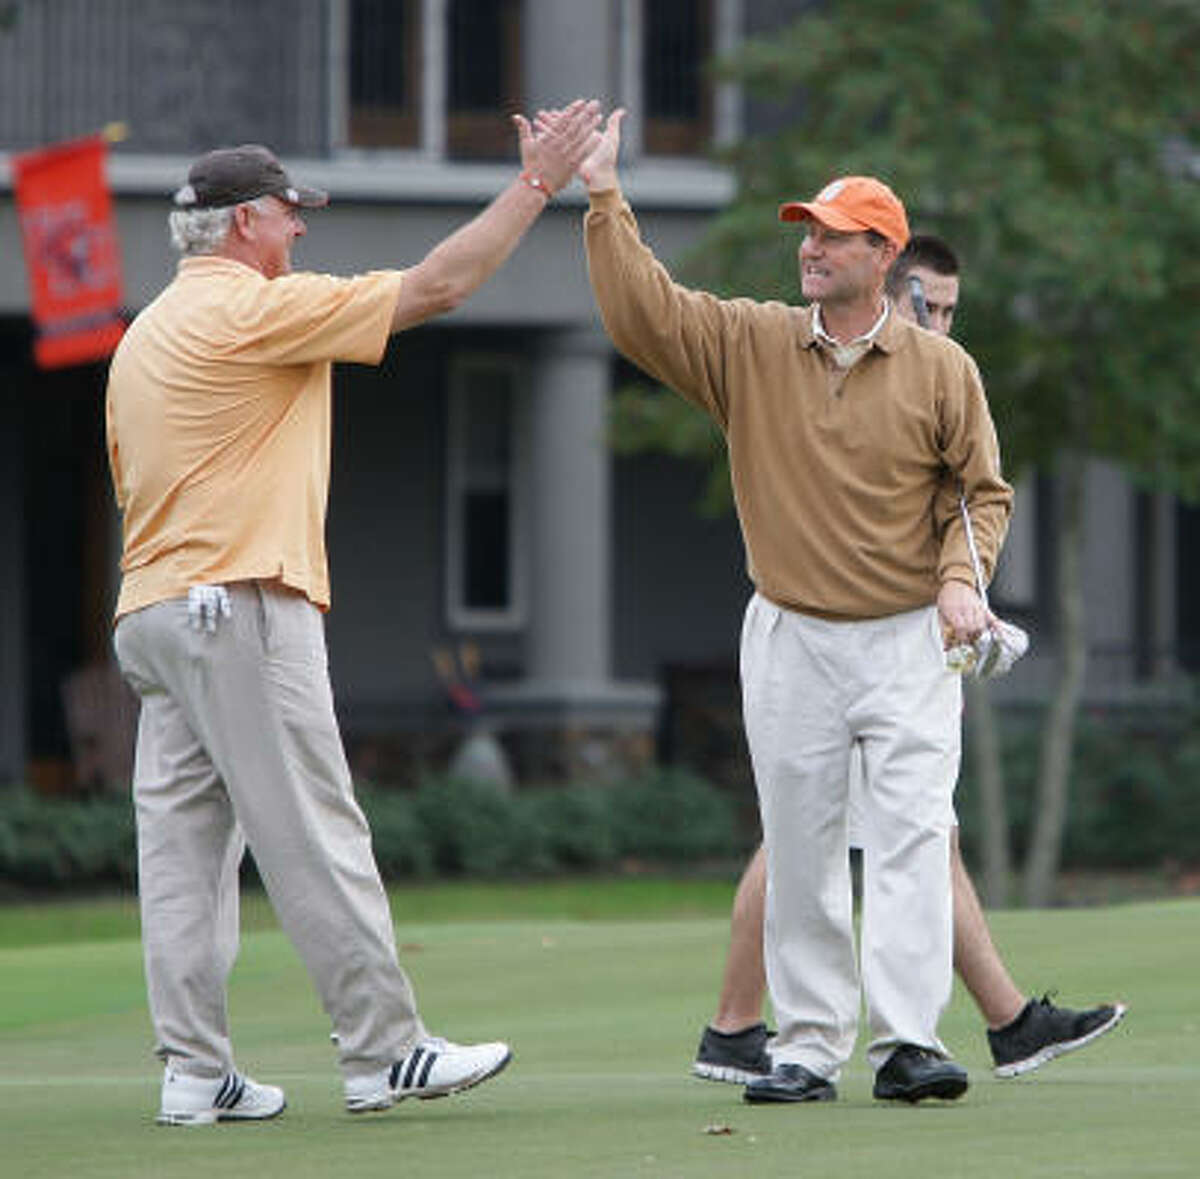 Thomas Ross, right, celebrates with his partner, Jerry Wilson, after making a putt on the seventh hole.